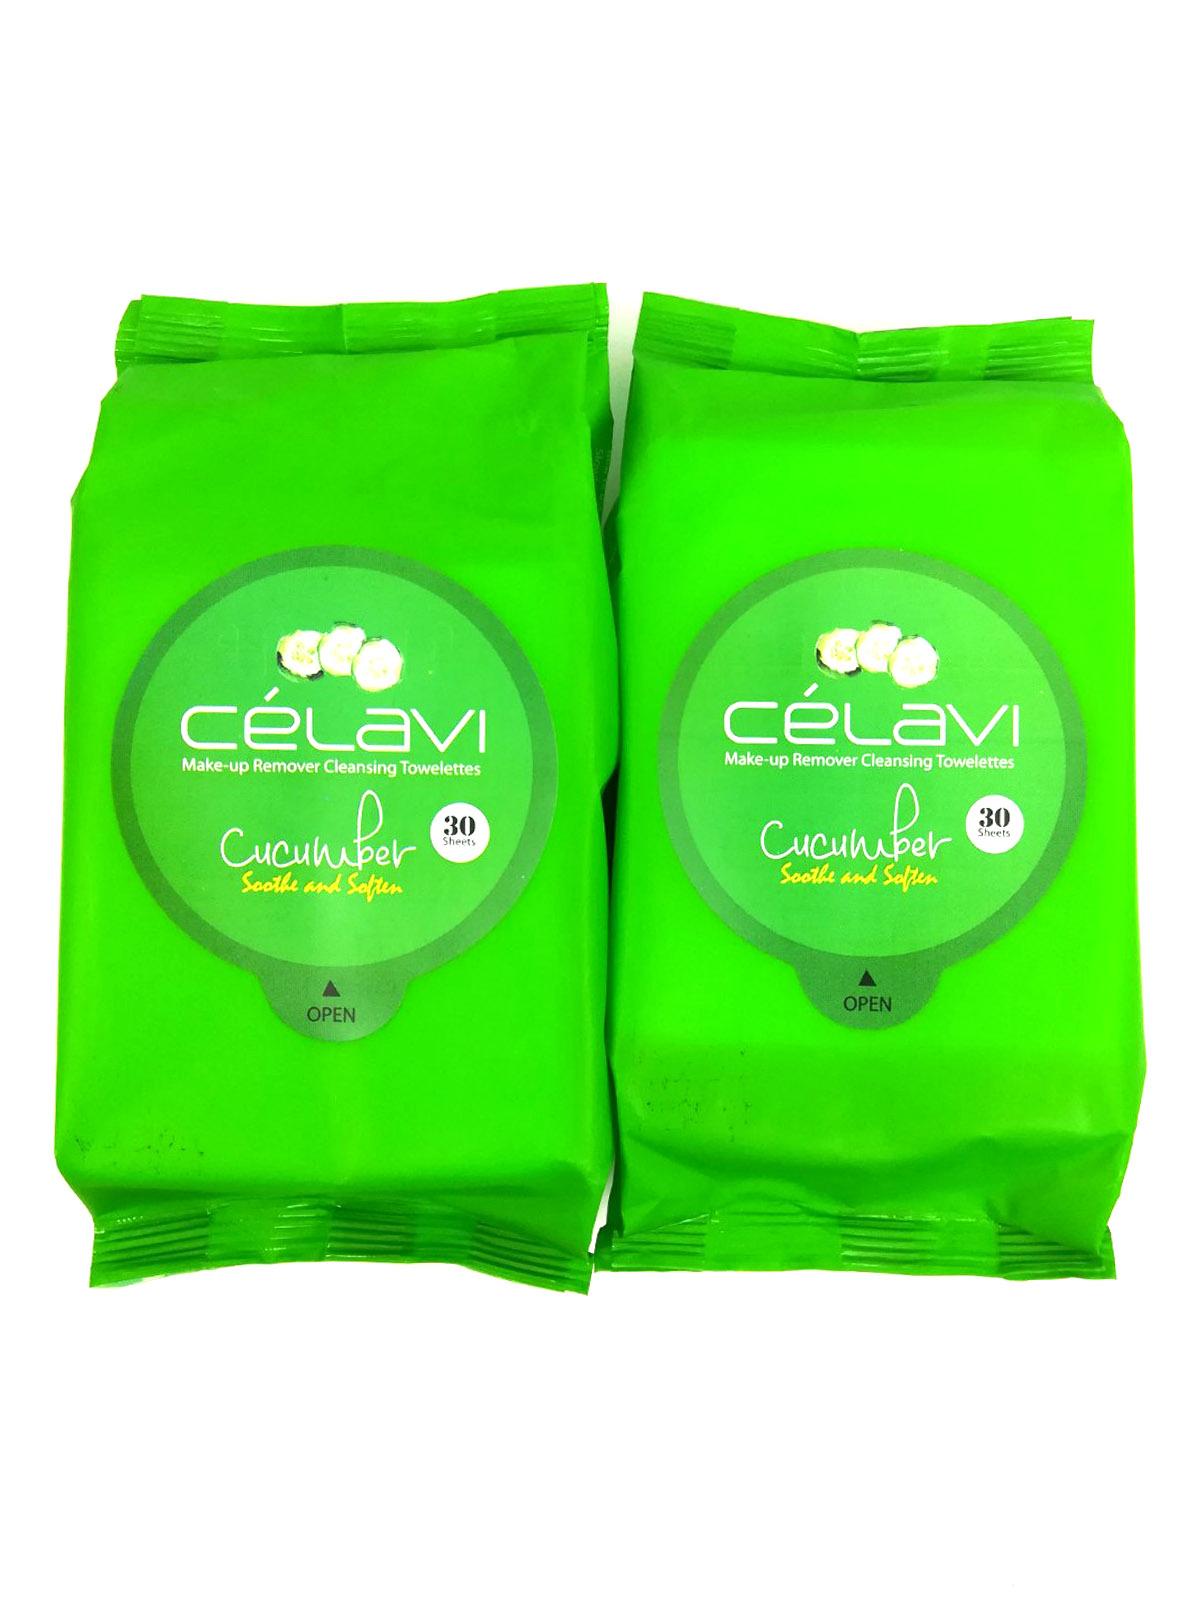 Celavi Makeup Remover Cleansing Wipes Removing Towelettes 2 Packs - 60 Sheets (Cucumber) Every Man Jack Age Defiant Eye Cream, 0.5 Oz